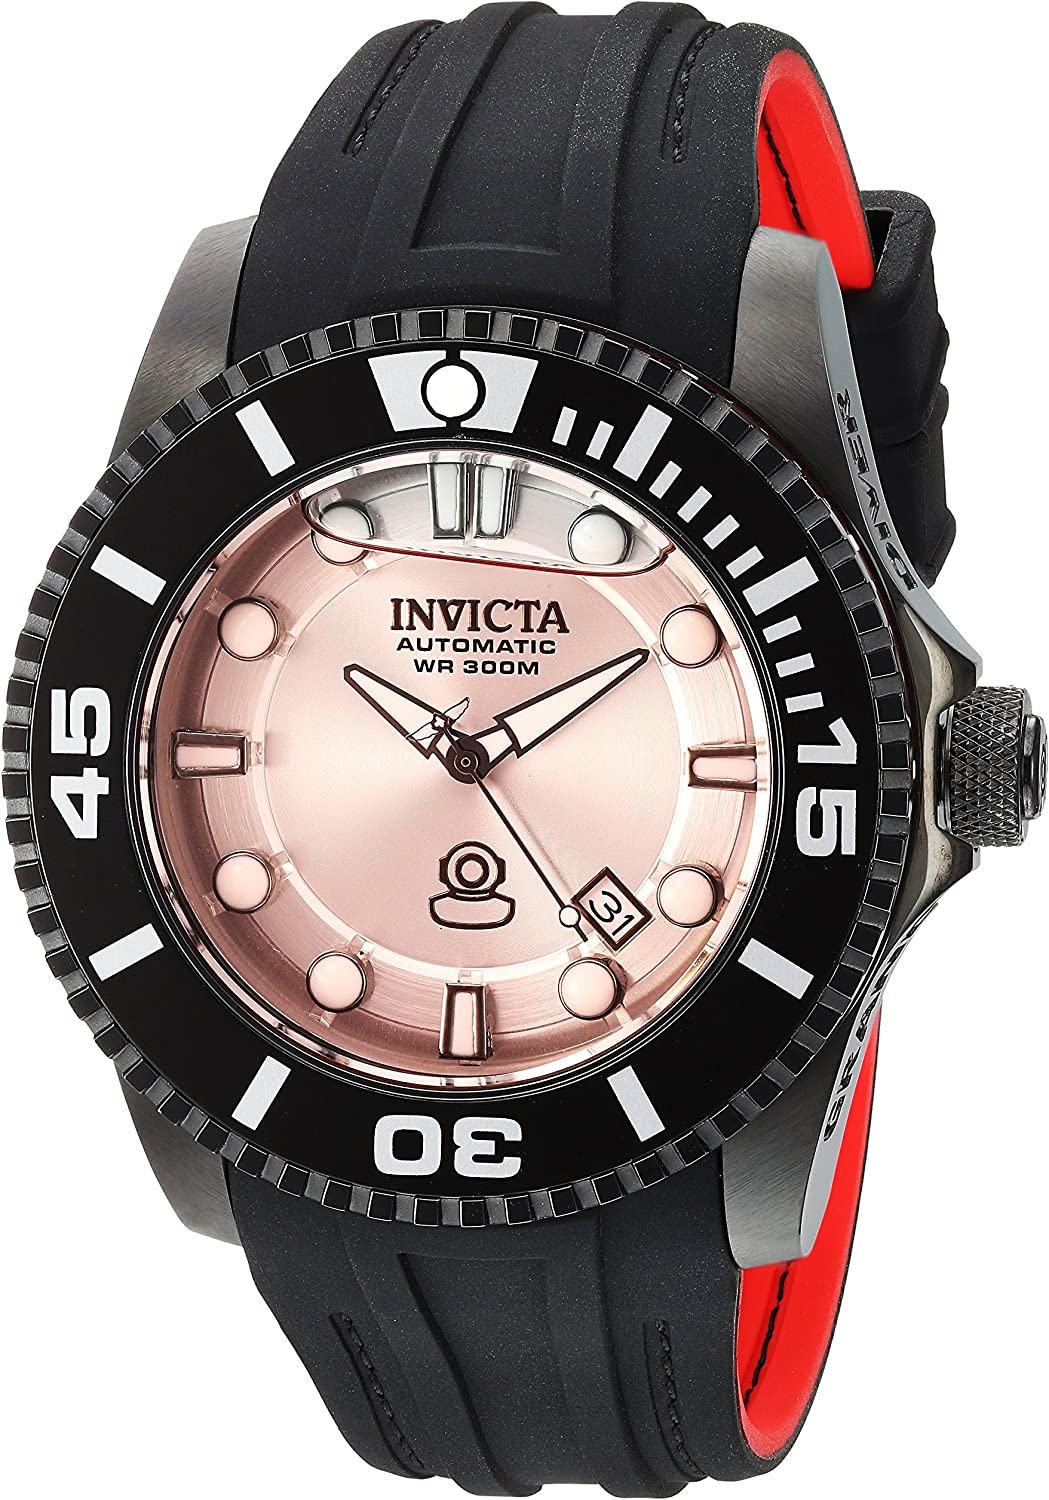 Invicta Men s Pro Diver Stainless Steel Automatic-self-Wind Diving Watch with Silicone Strap, Black, 25 Model 22995